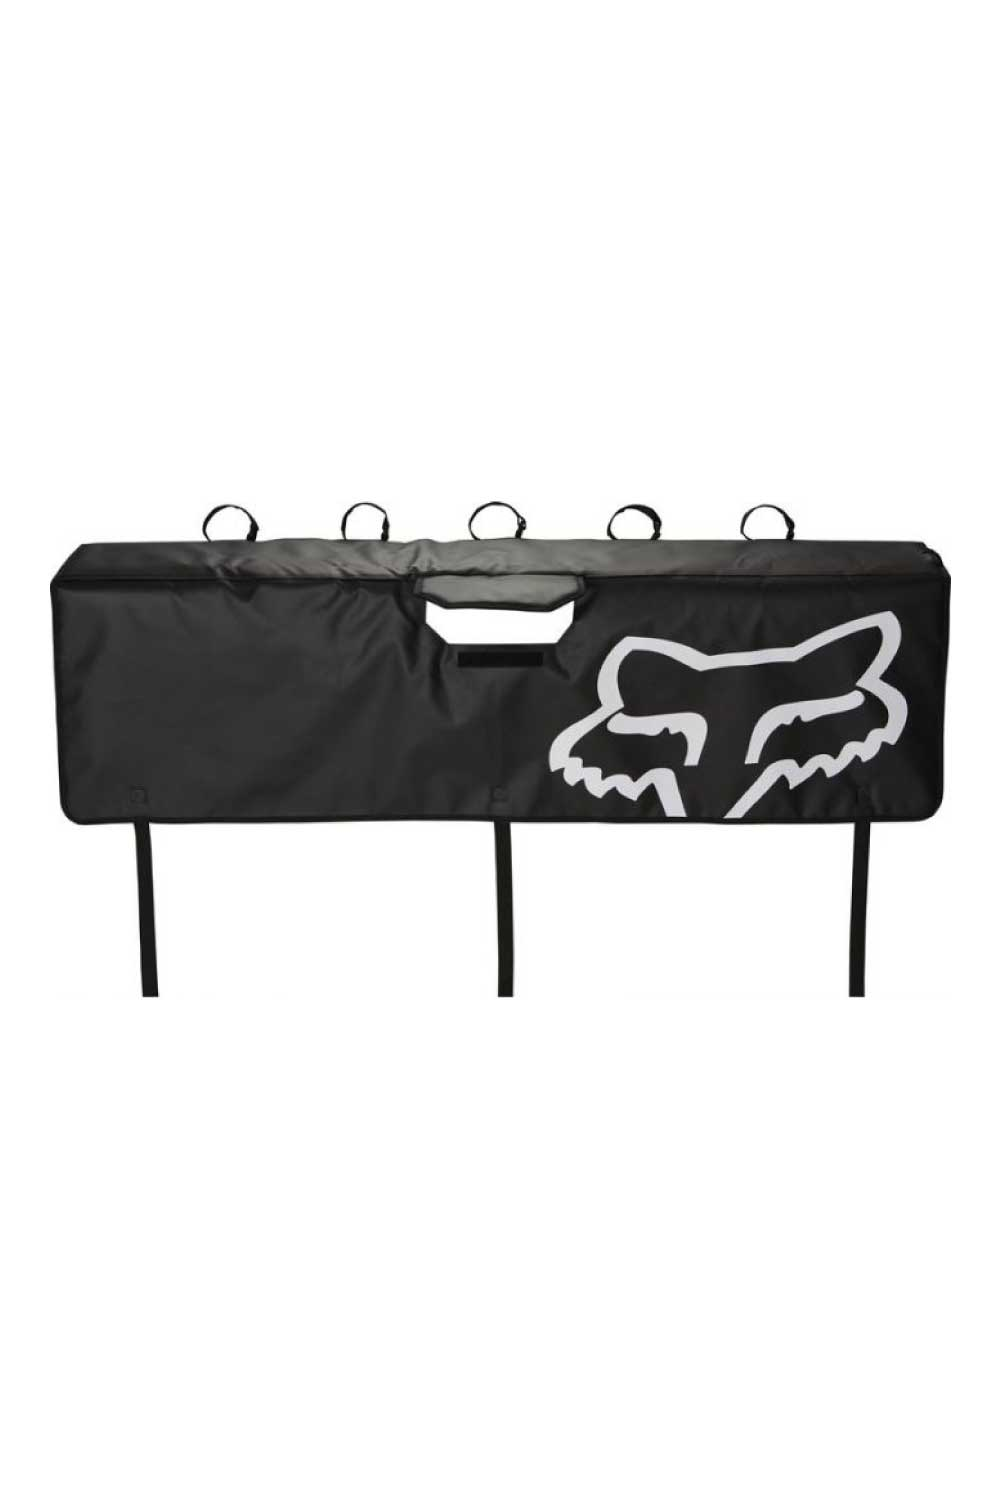 FOX Racing Black Car Ute MTB Bike Tailgate Cover 54 Inch